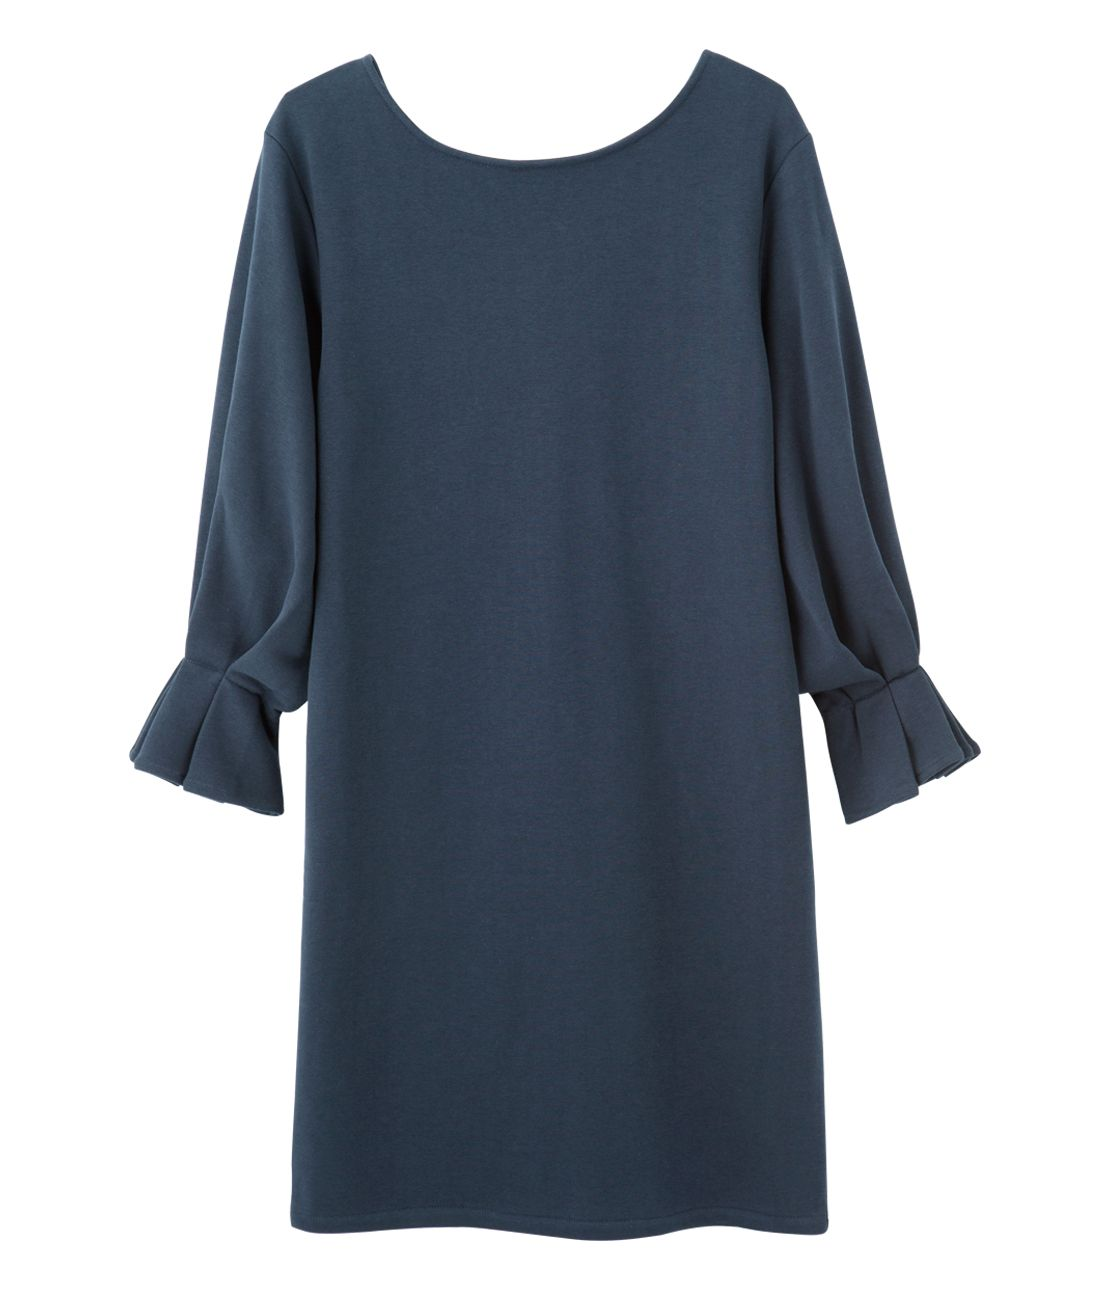 Tack sleeve sweatshirt dress